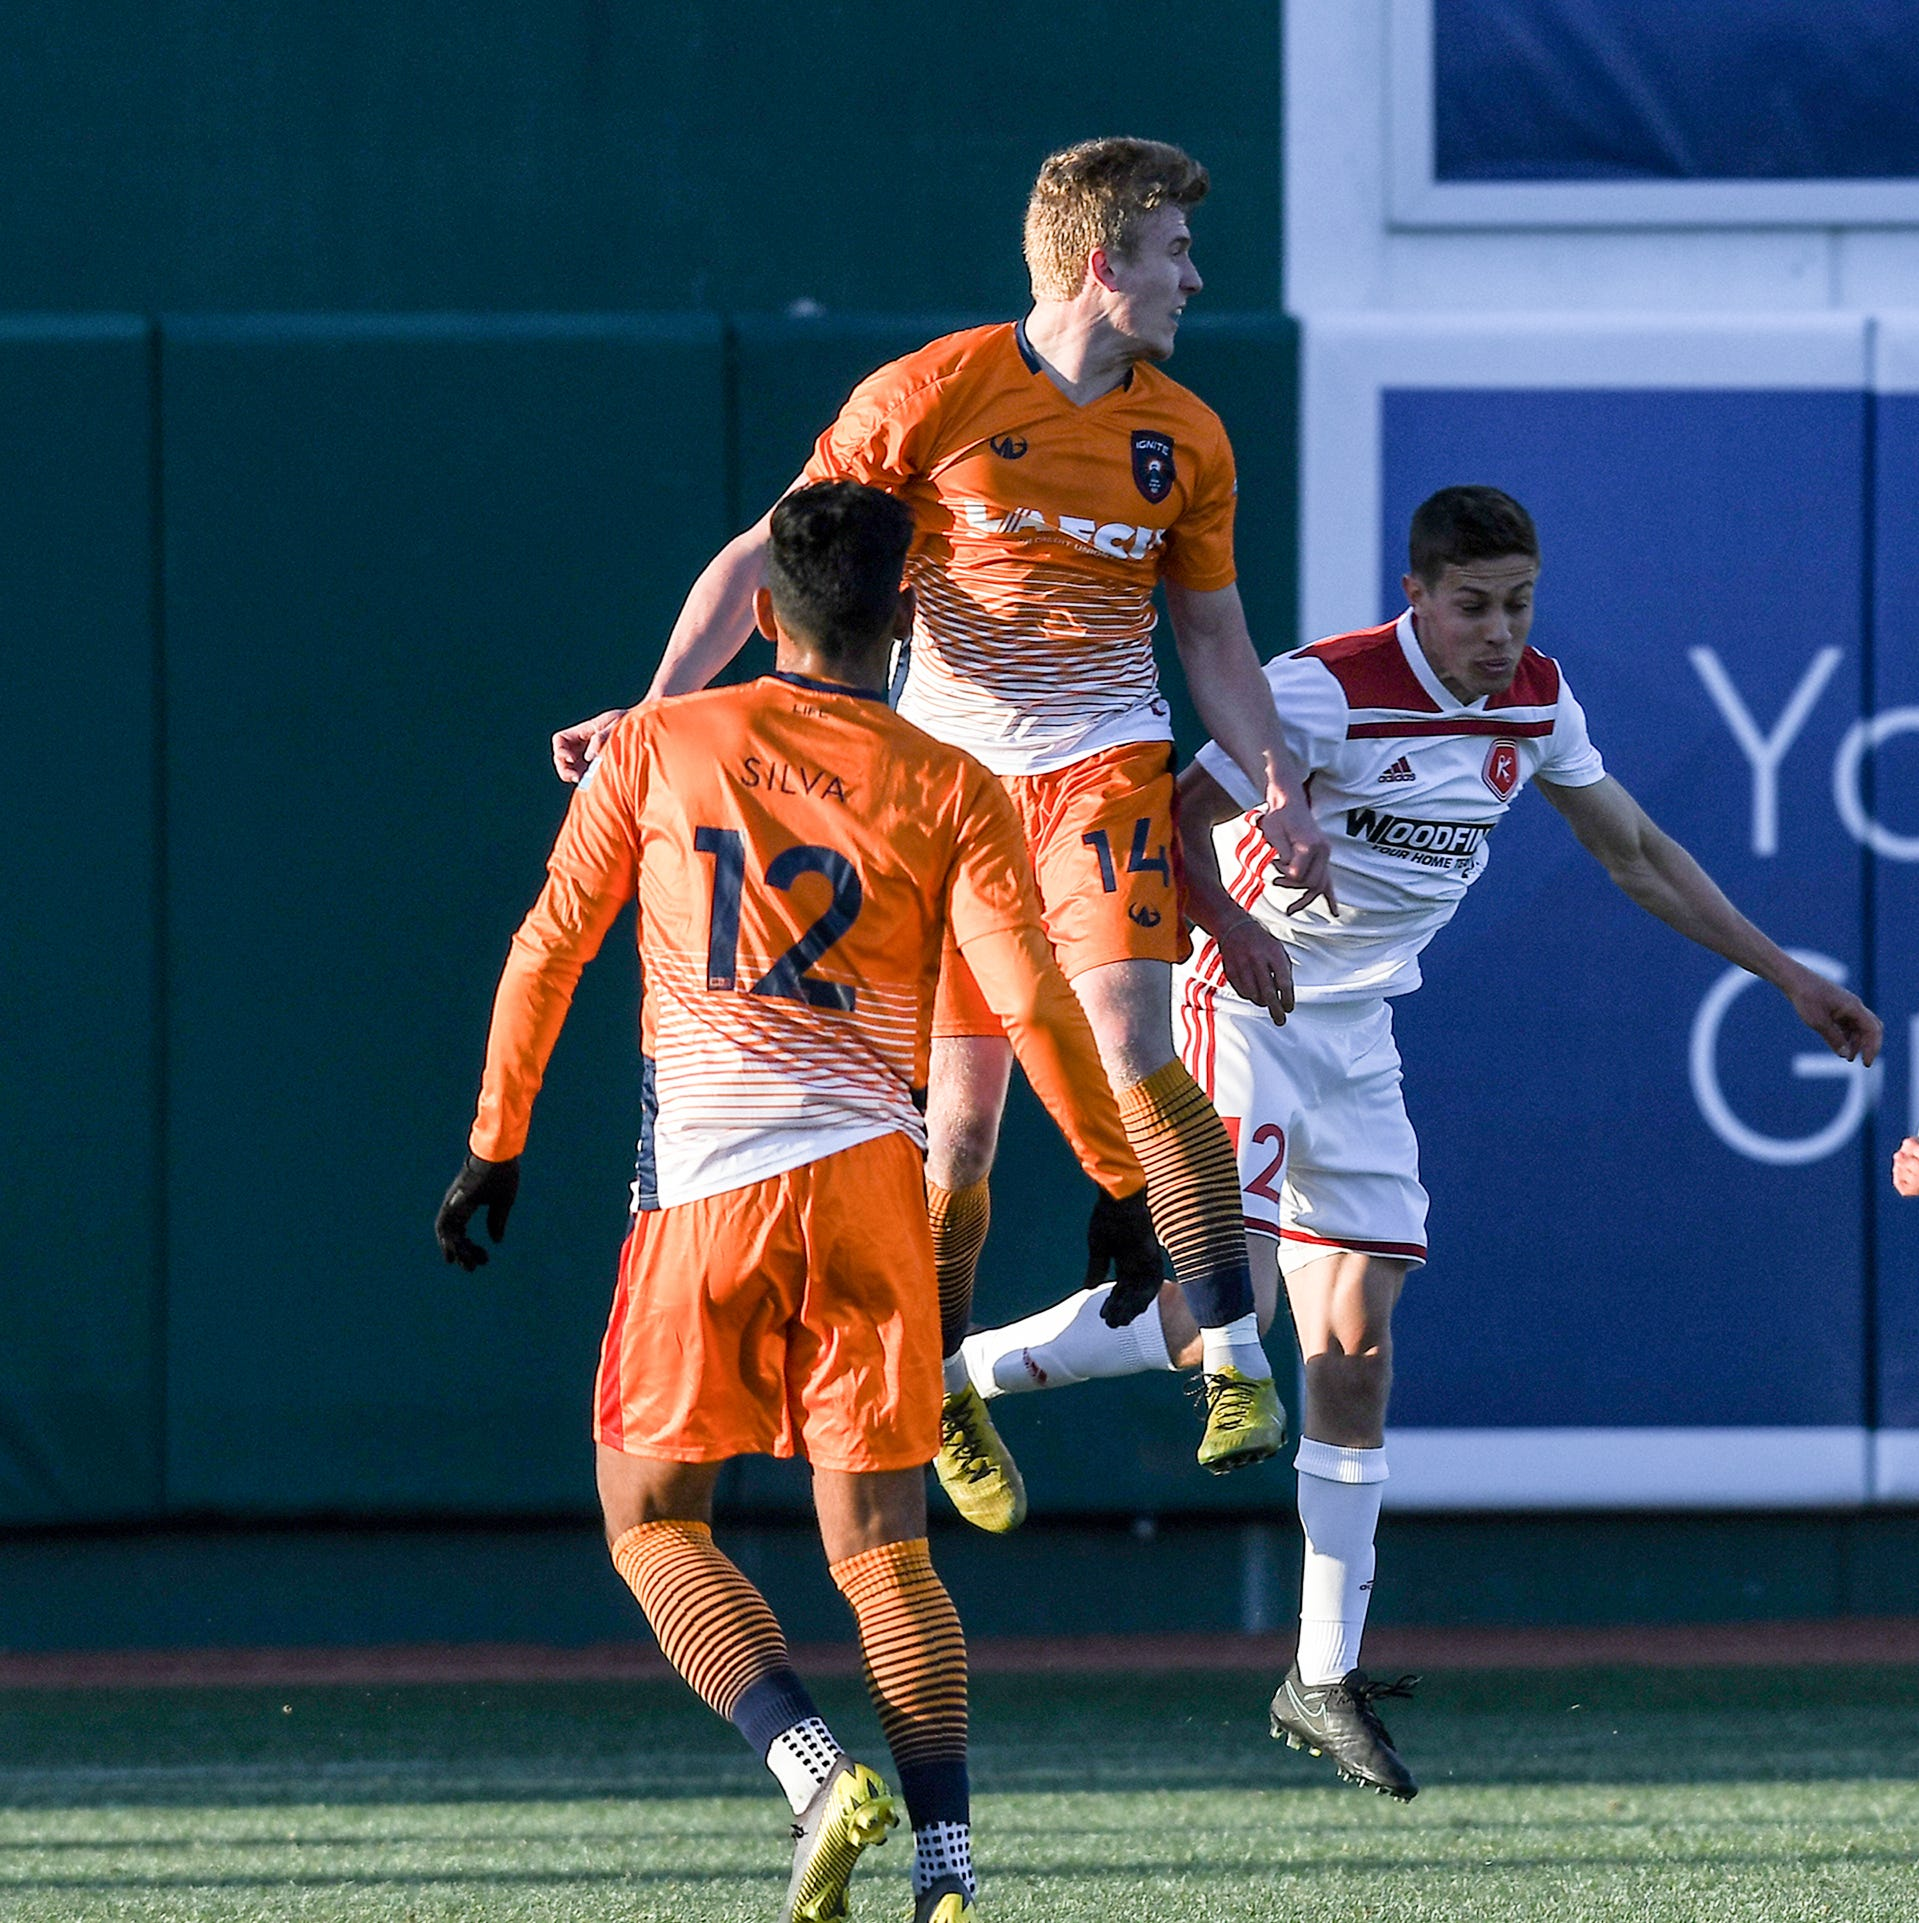 'Three beautiful goals' lead Lansing Ignite on historic night at Cooley Law School Stadium